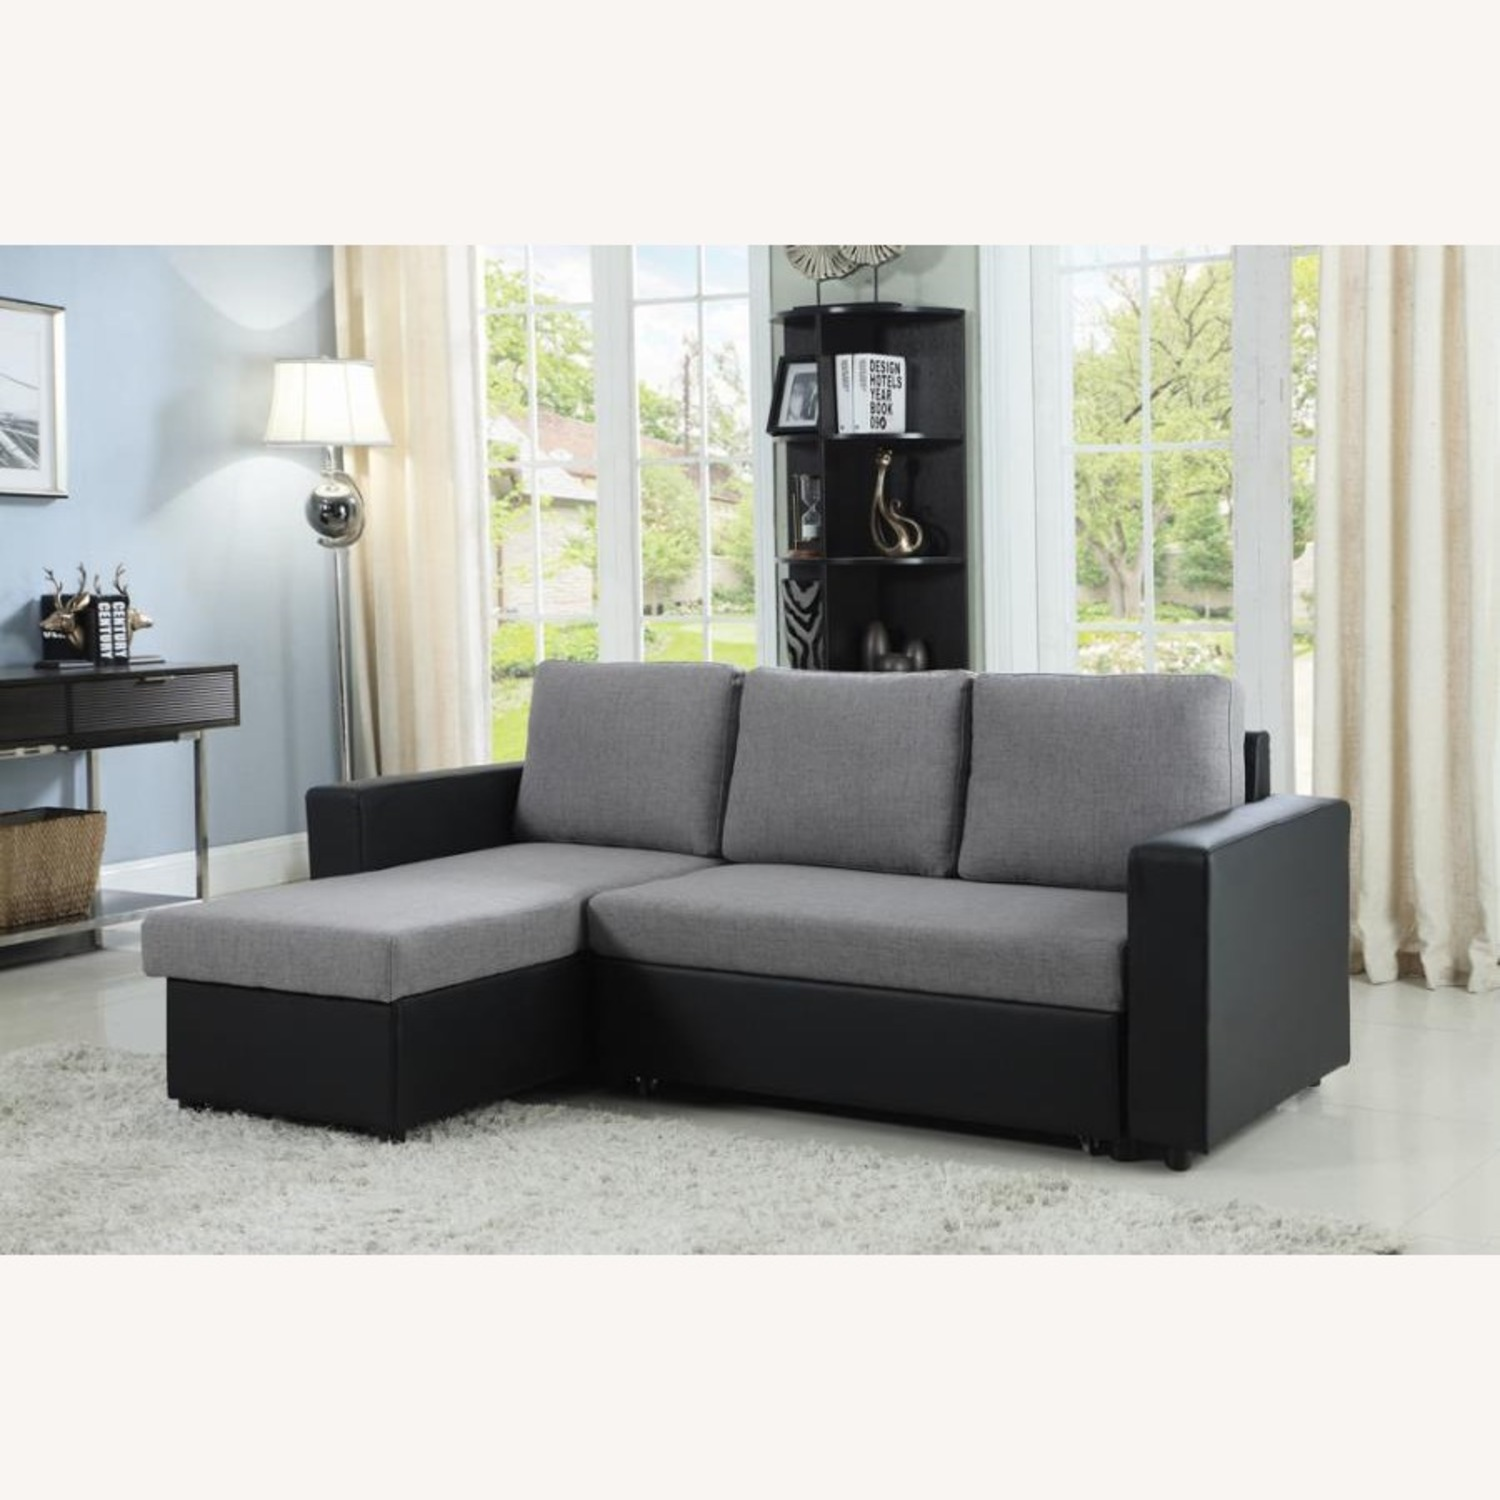 2-Piece Sectional In Grey Linen-Like Fabric - image-4